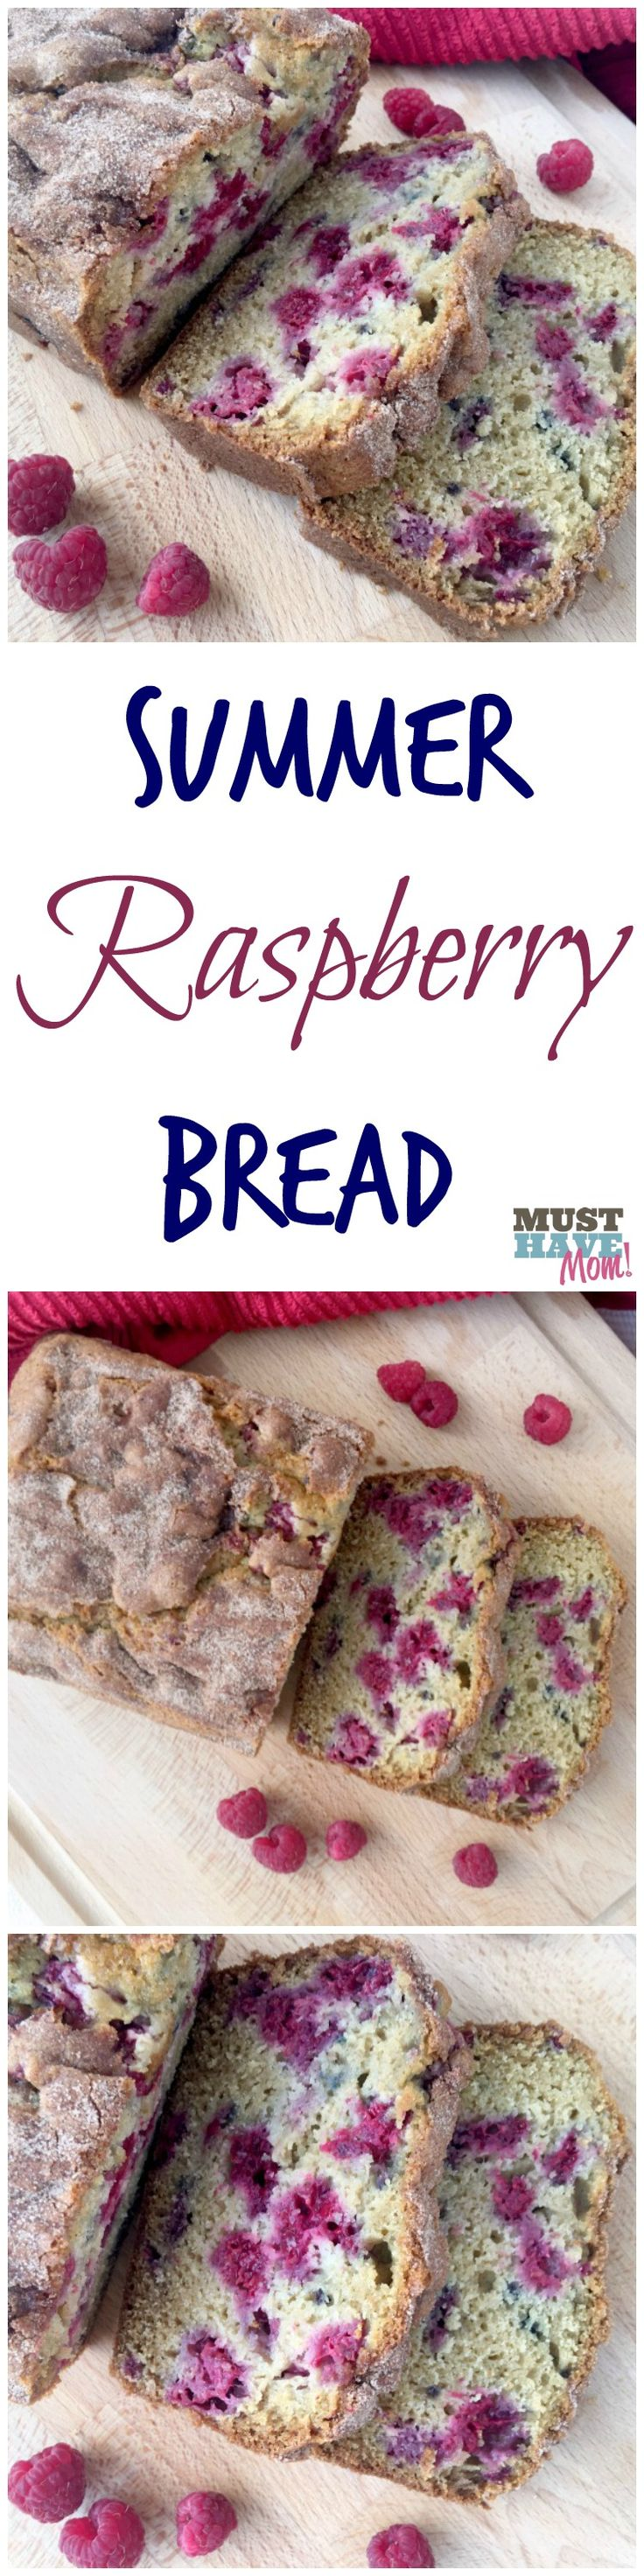 The best summer raspberry bread ever! Moist, mouth-watering berries nestled in a moist cinnamon sugar topped quick bread. Awesome raspberry recipe!